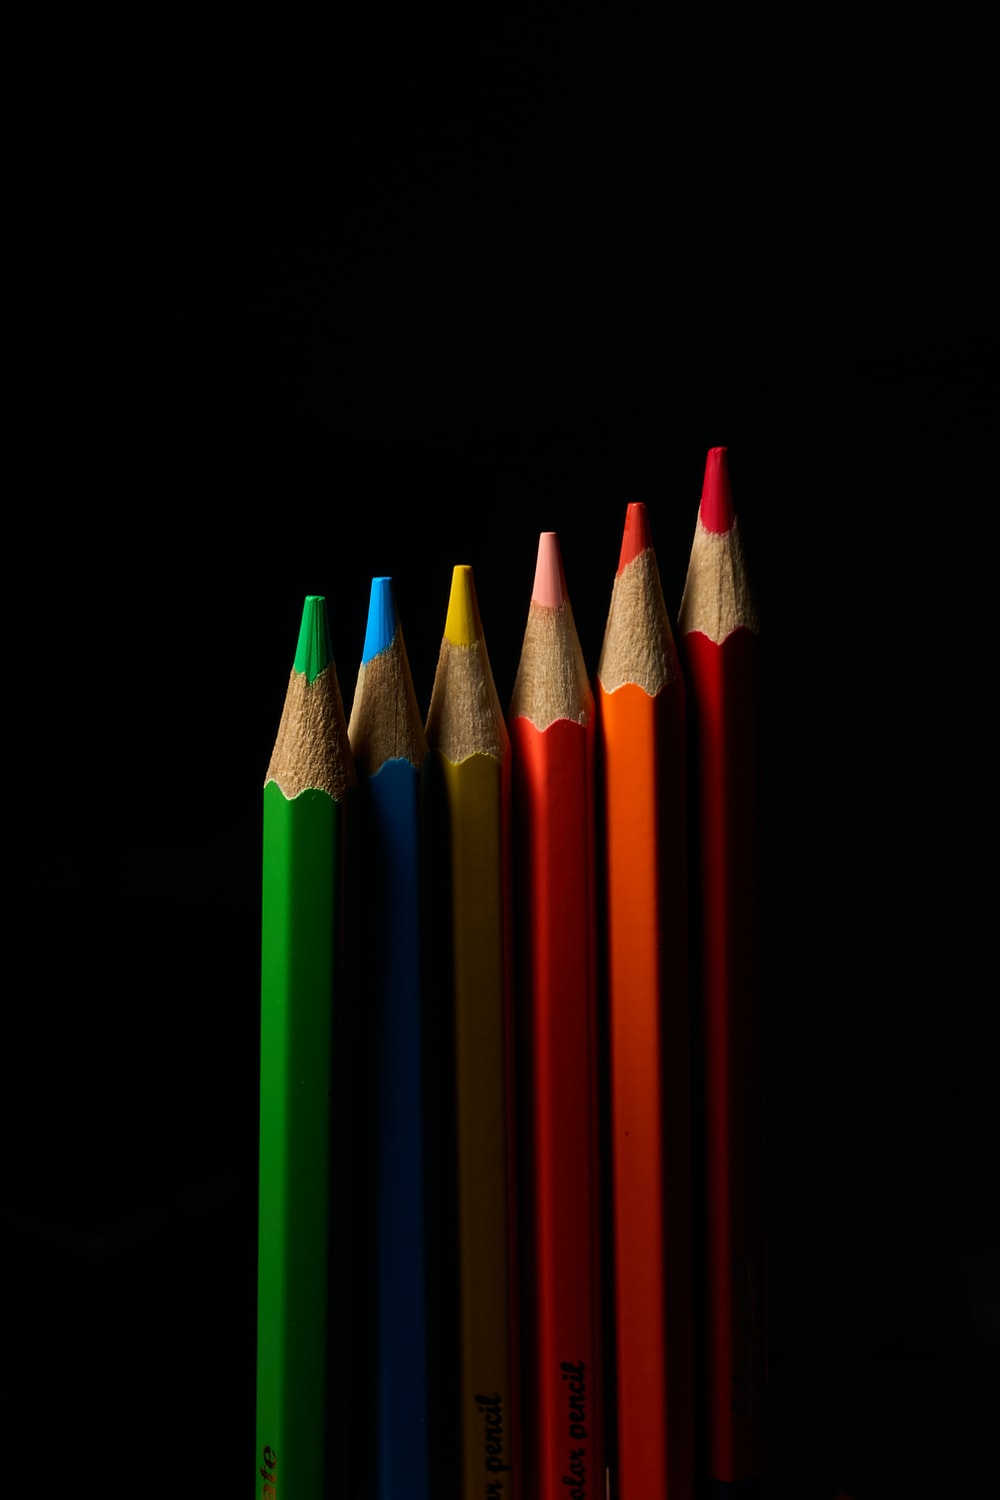 red green and blue color pencils